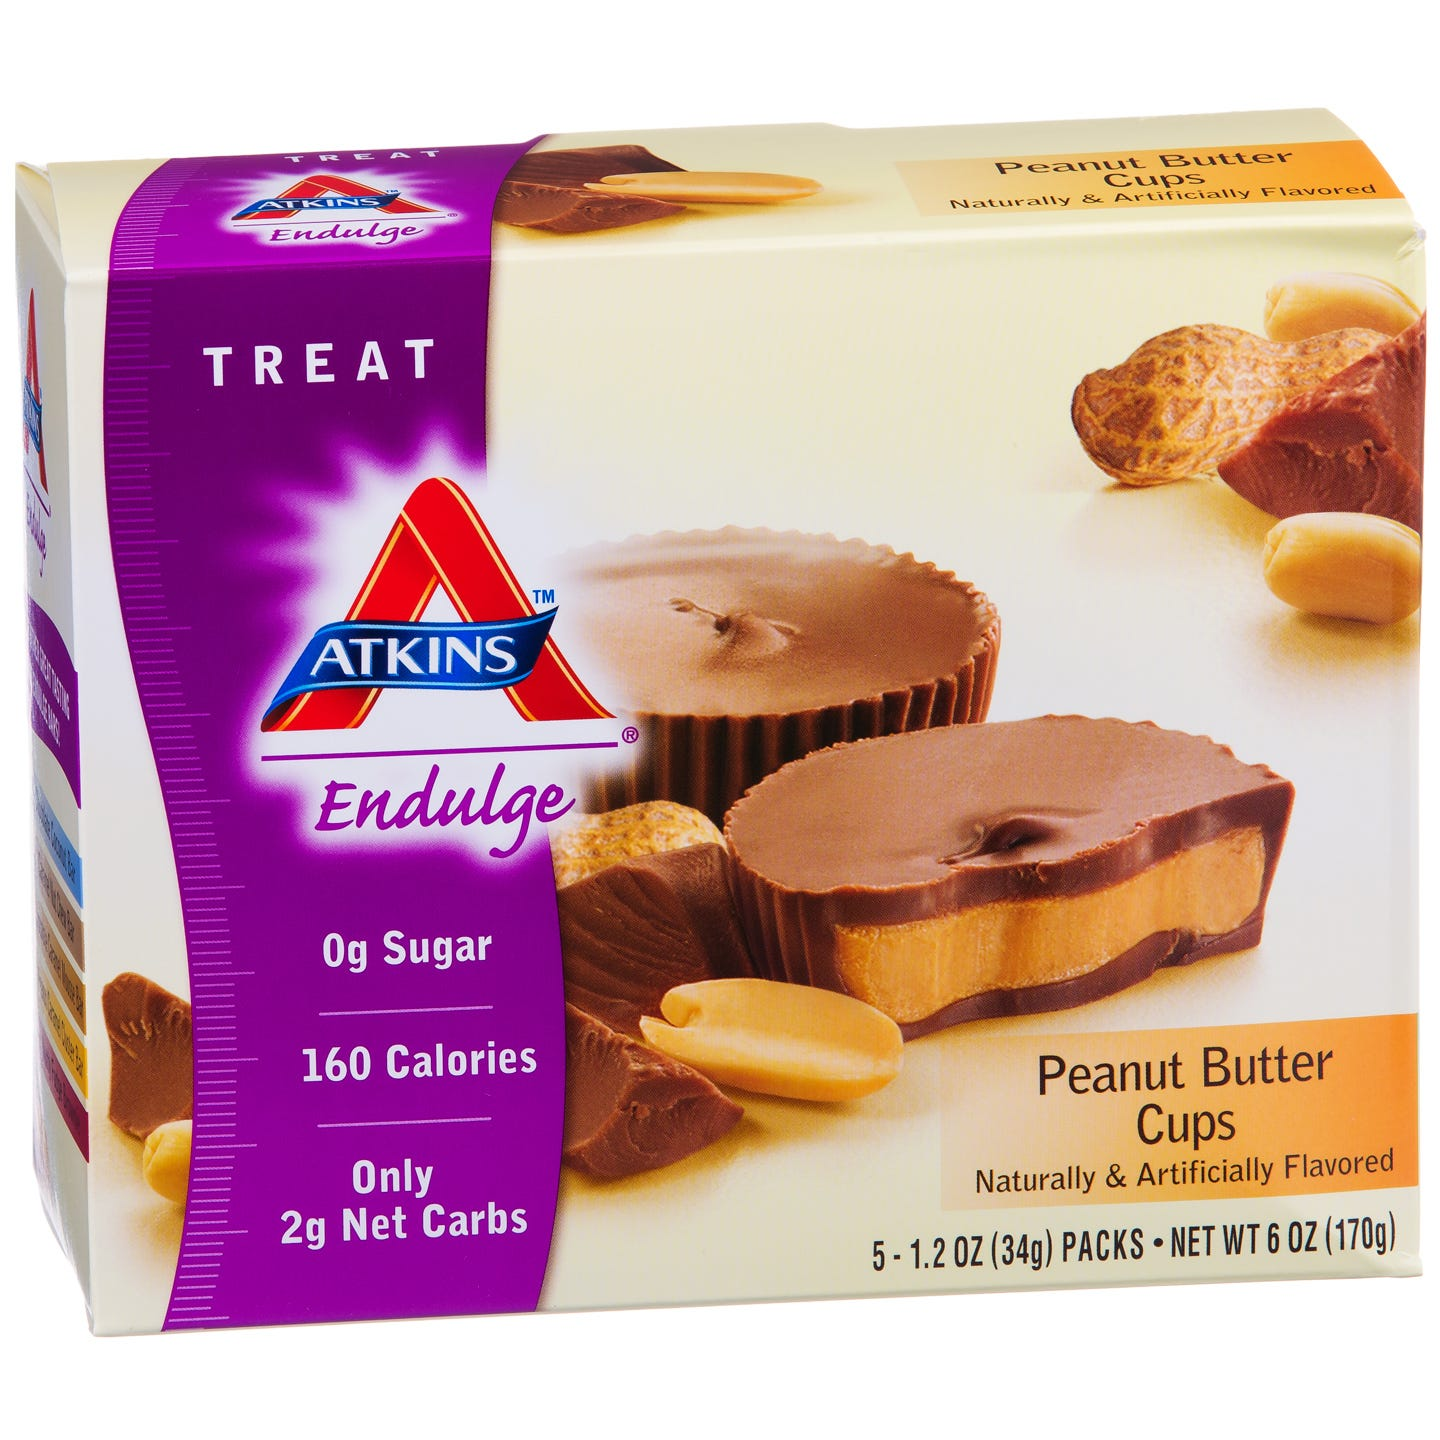 Atkins Endulge Bar - Peanut Butter Cup